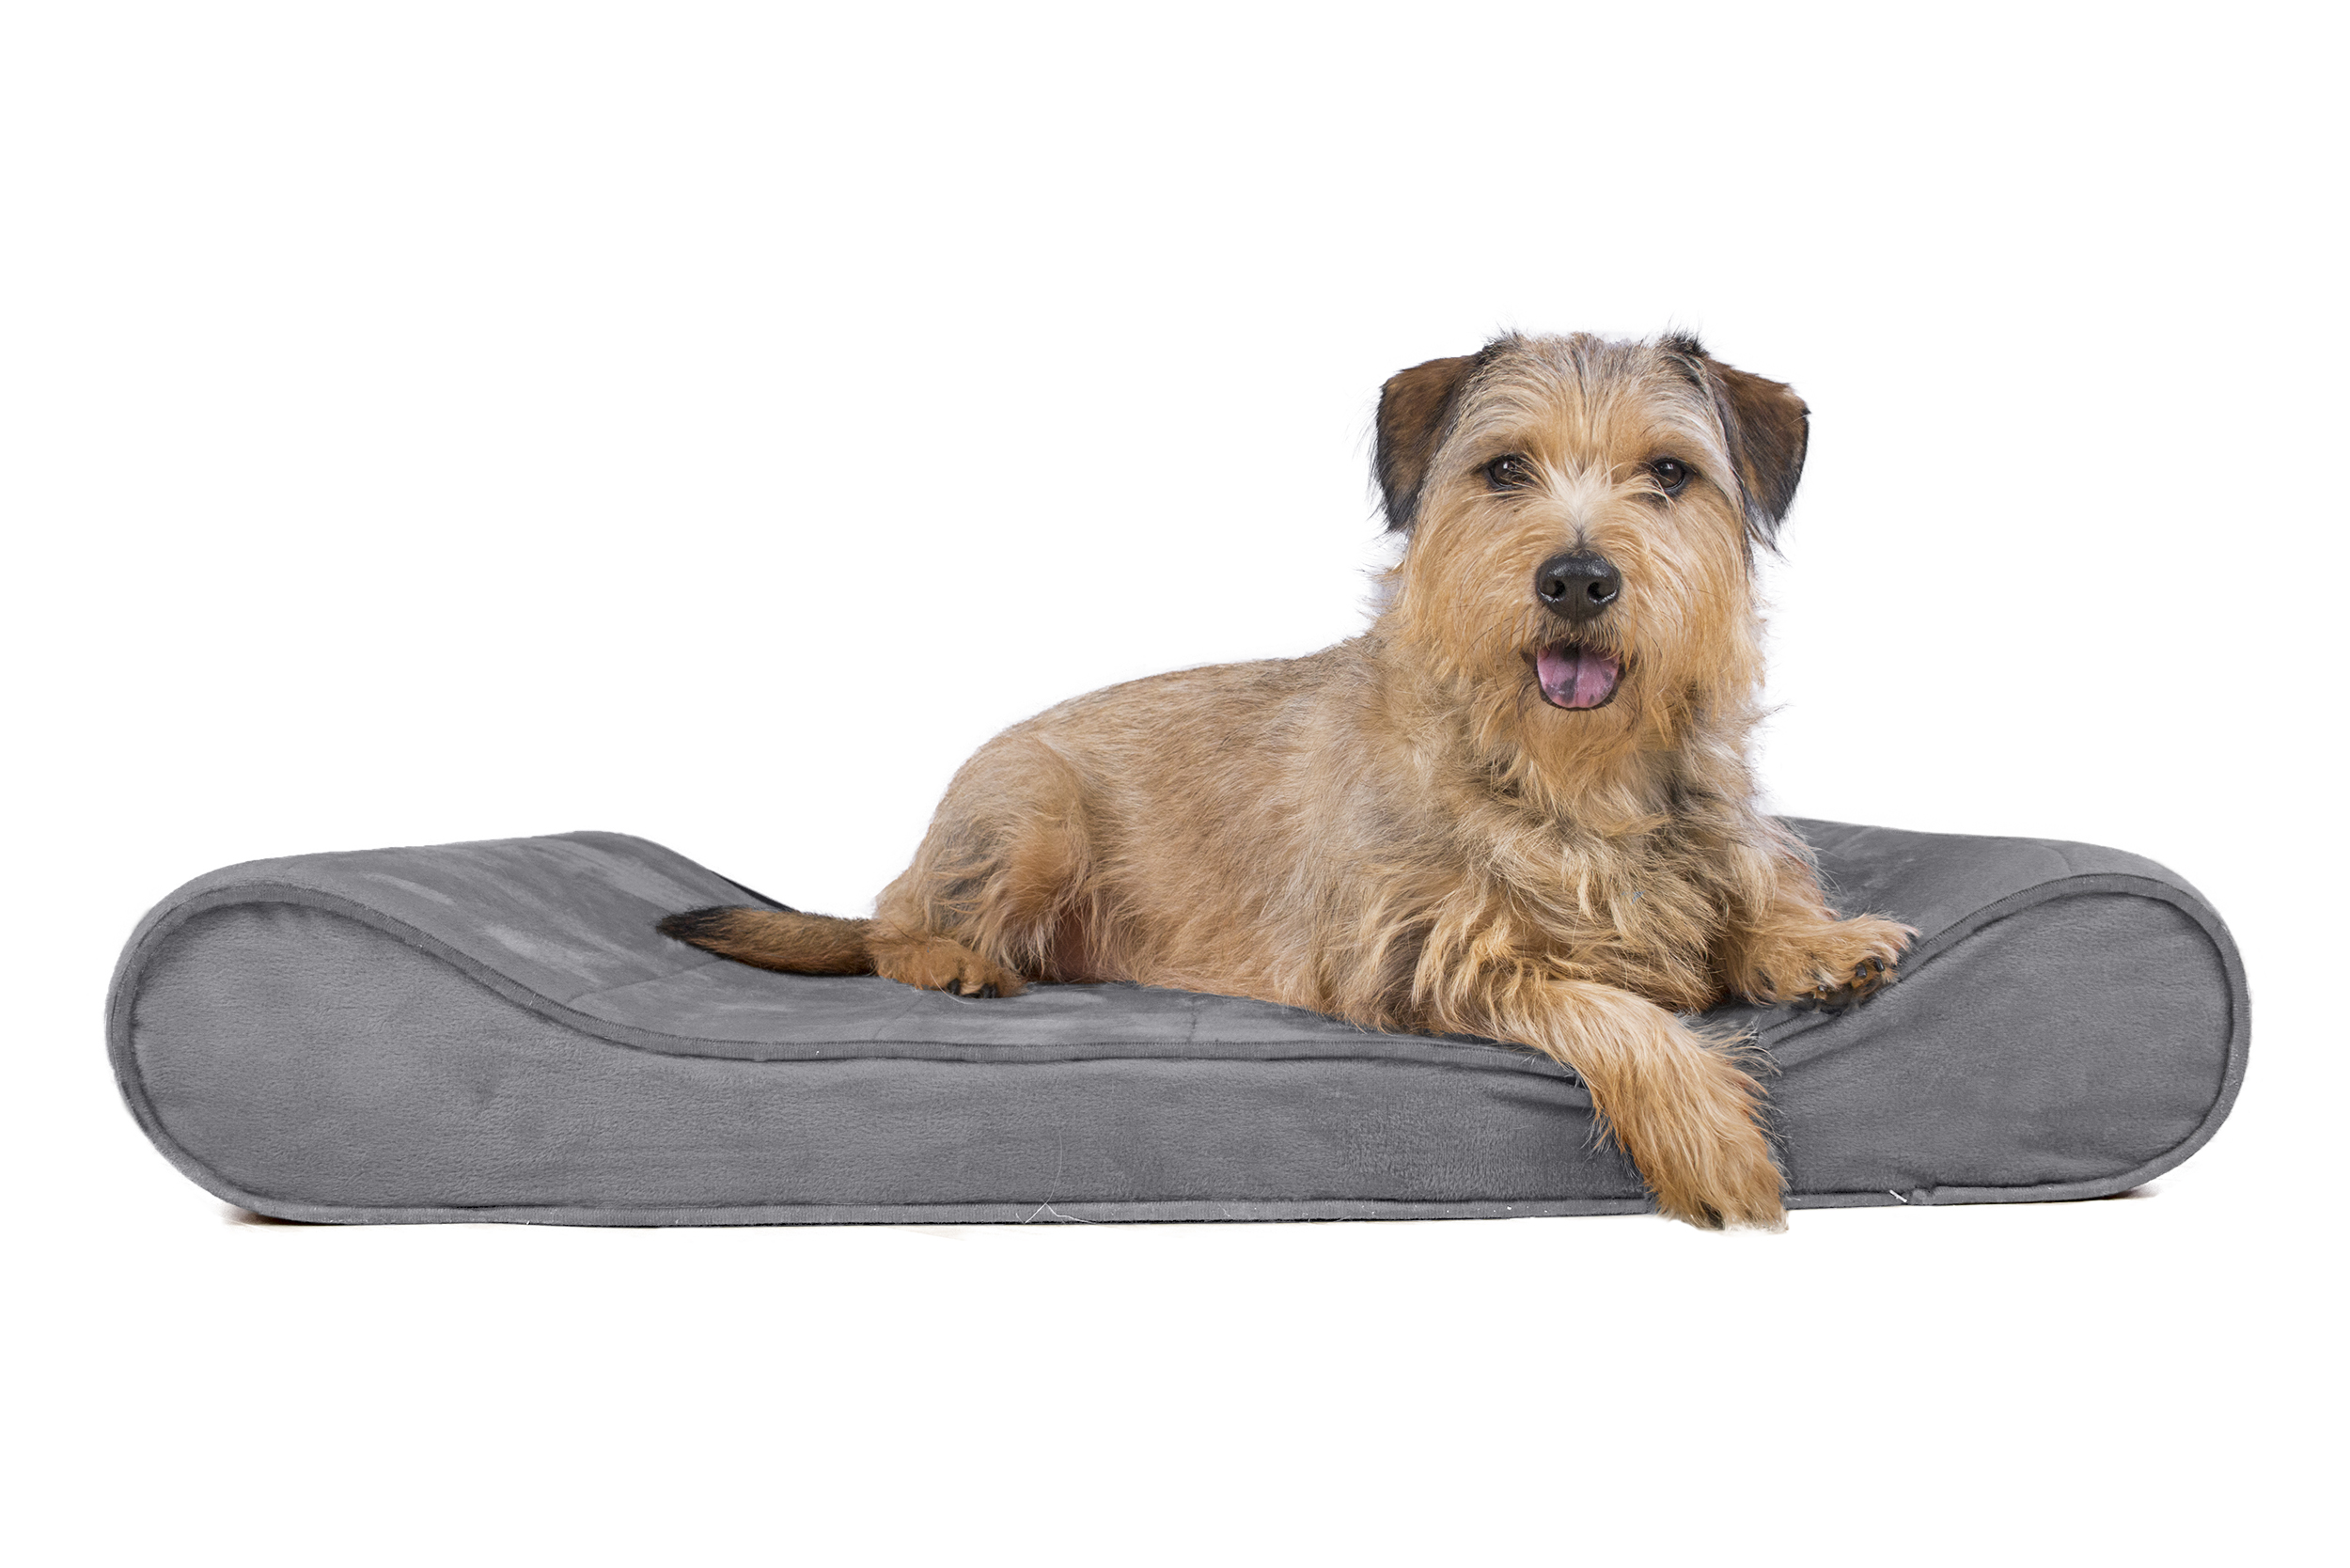 beds paw noten dog replacement bed cover top for korrectkritterscom l orthopedic animals